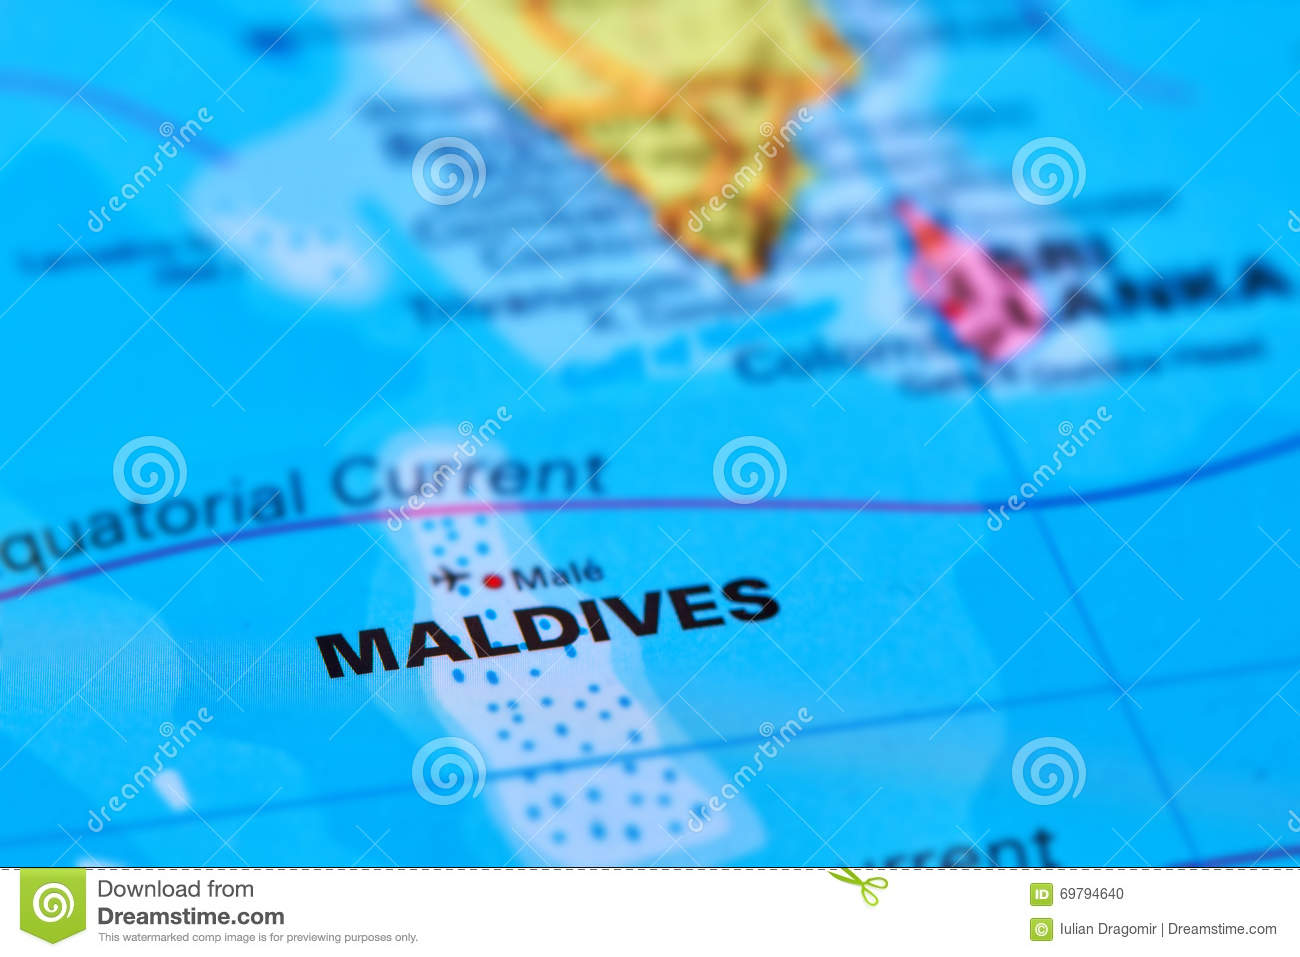 Maldives On Map Of Asia.Maldives Islands On The Map Stock Photo Image Of Indian Country